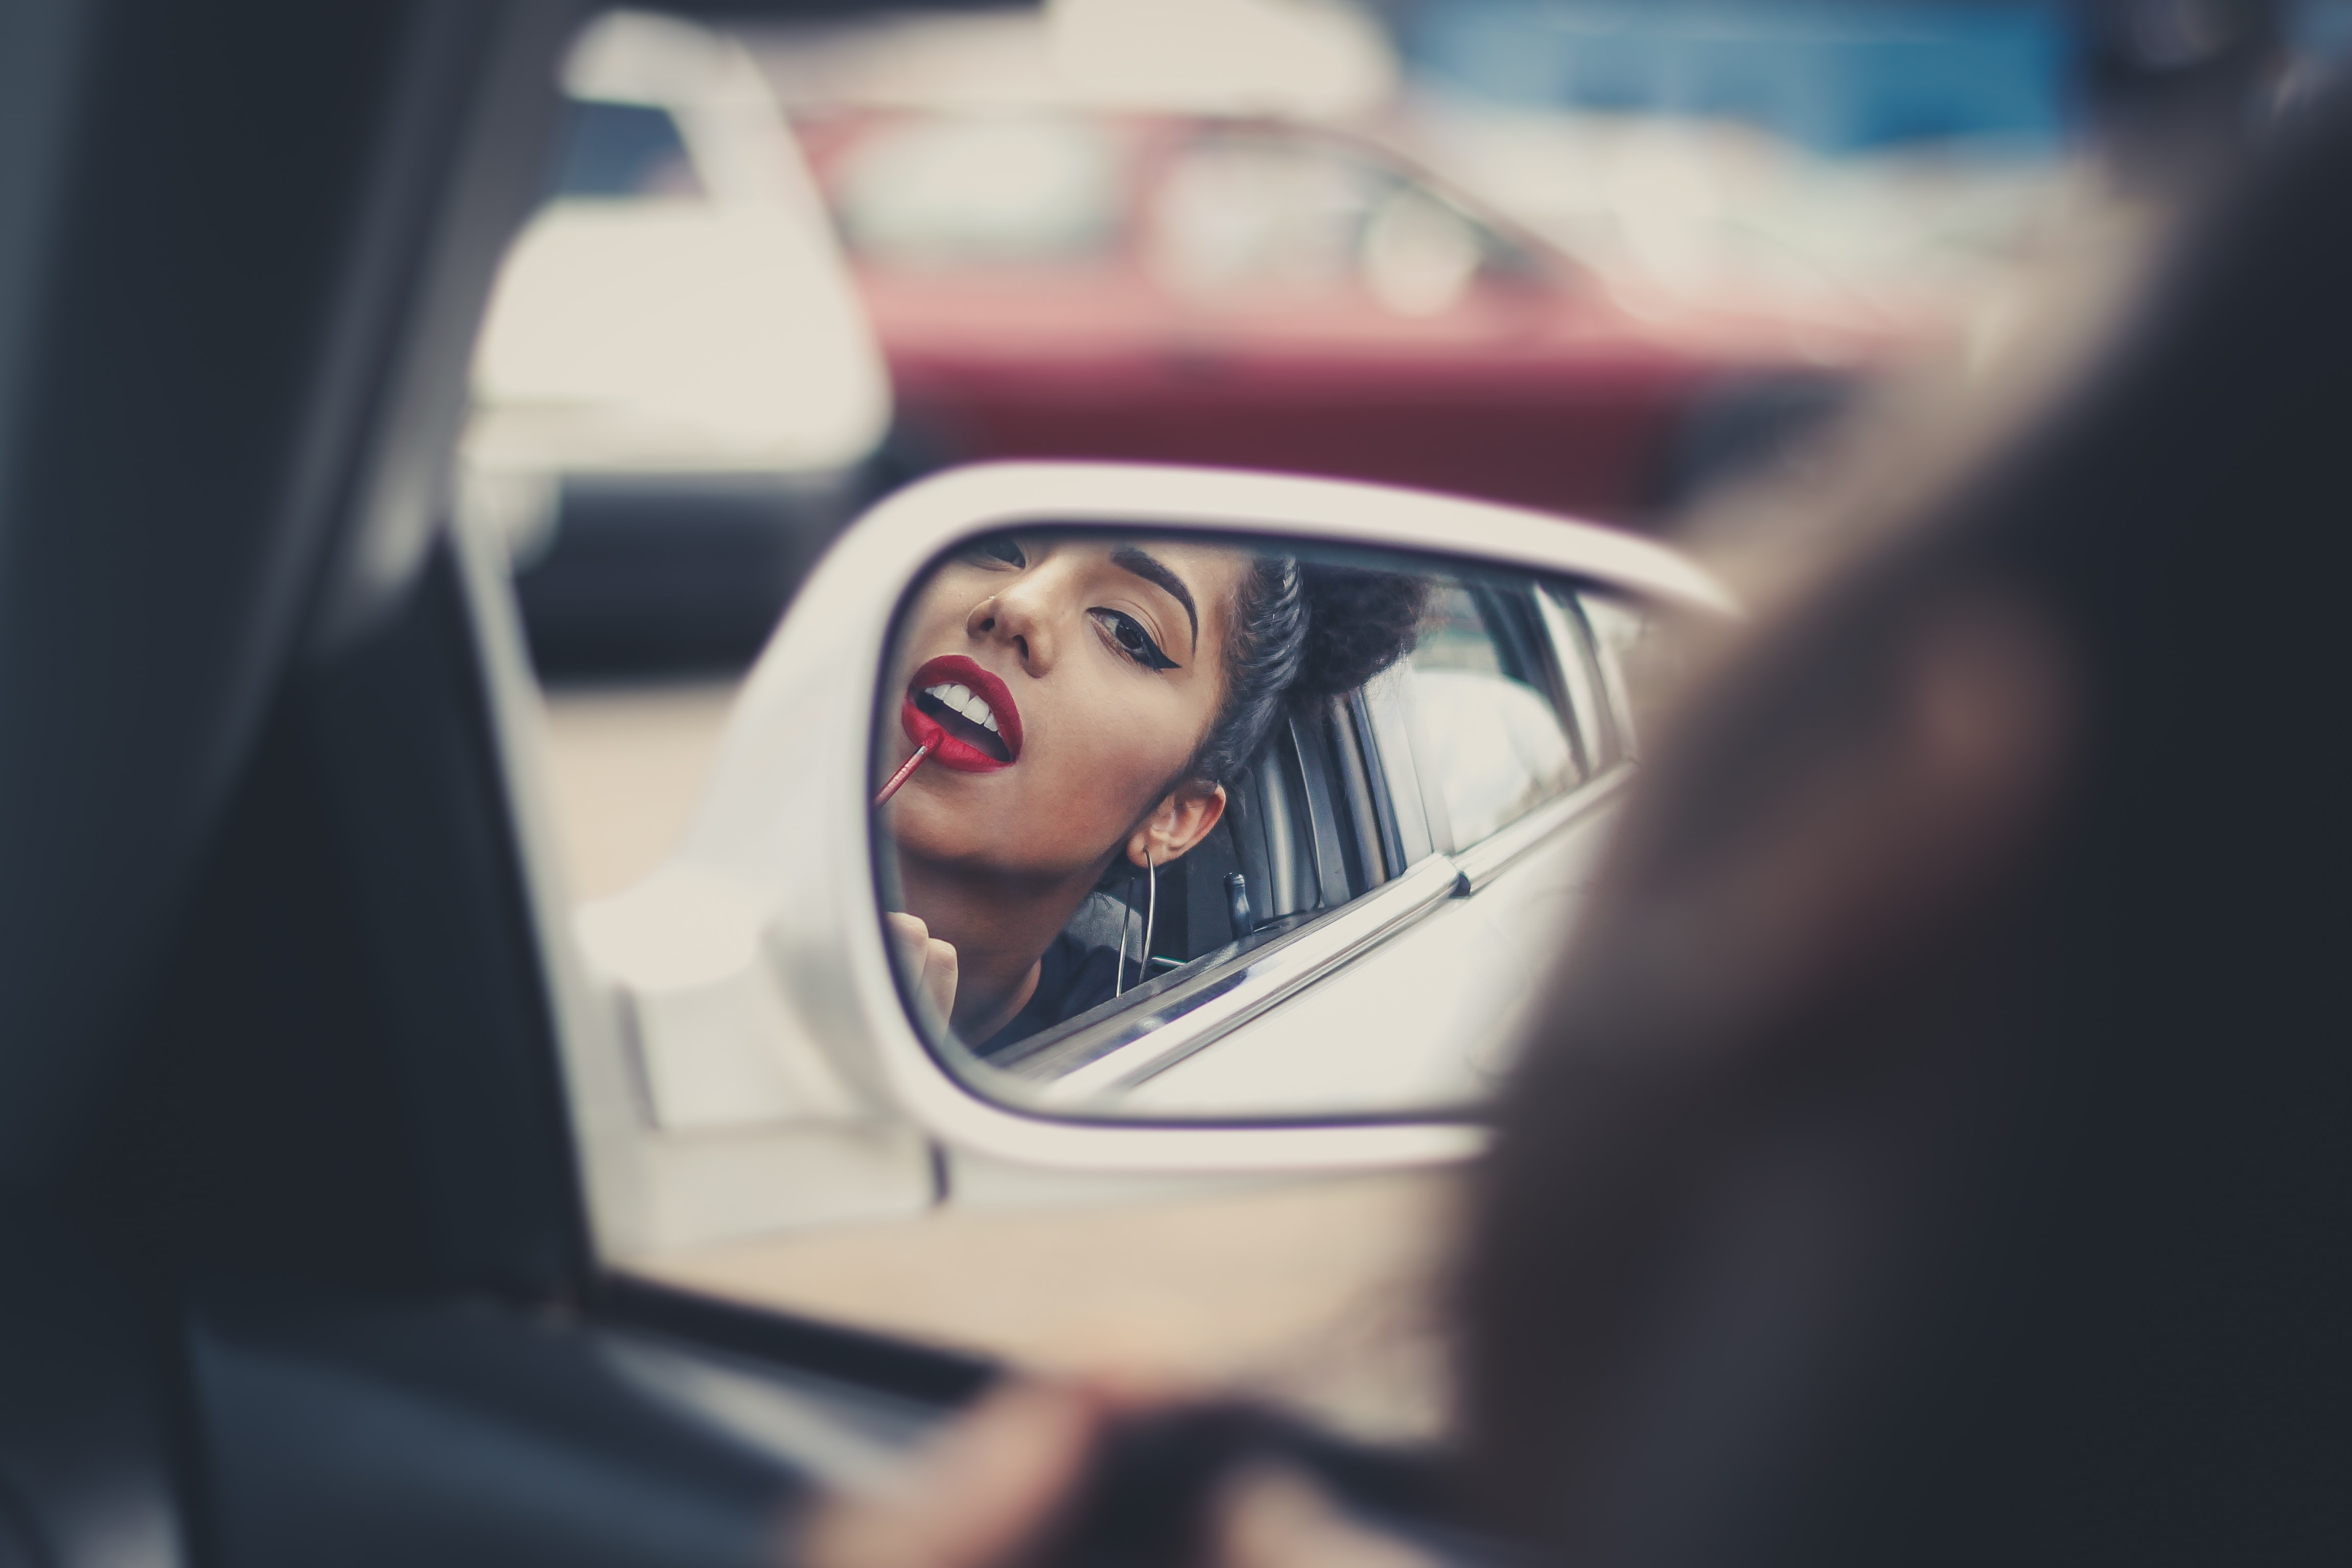 woman putting liquid lipstick on her lips while looking at vehicle's mirror during daytime